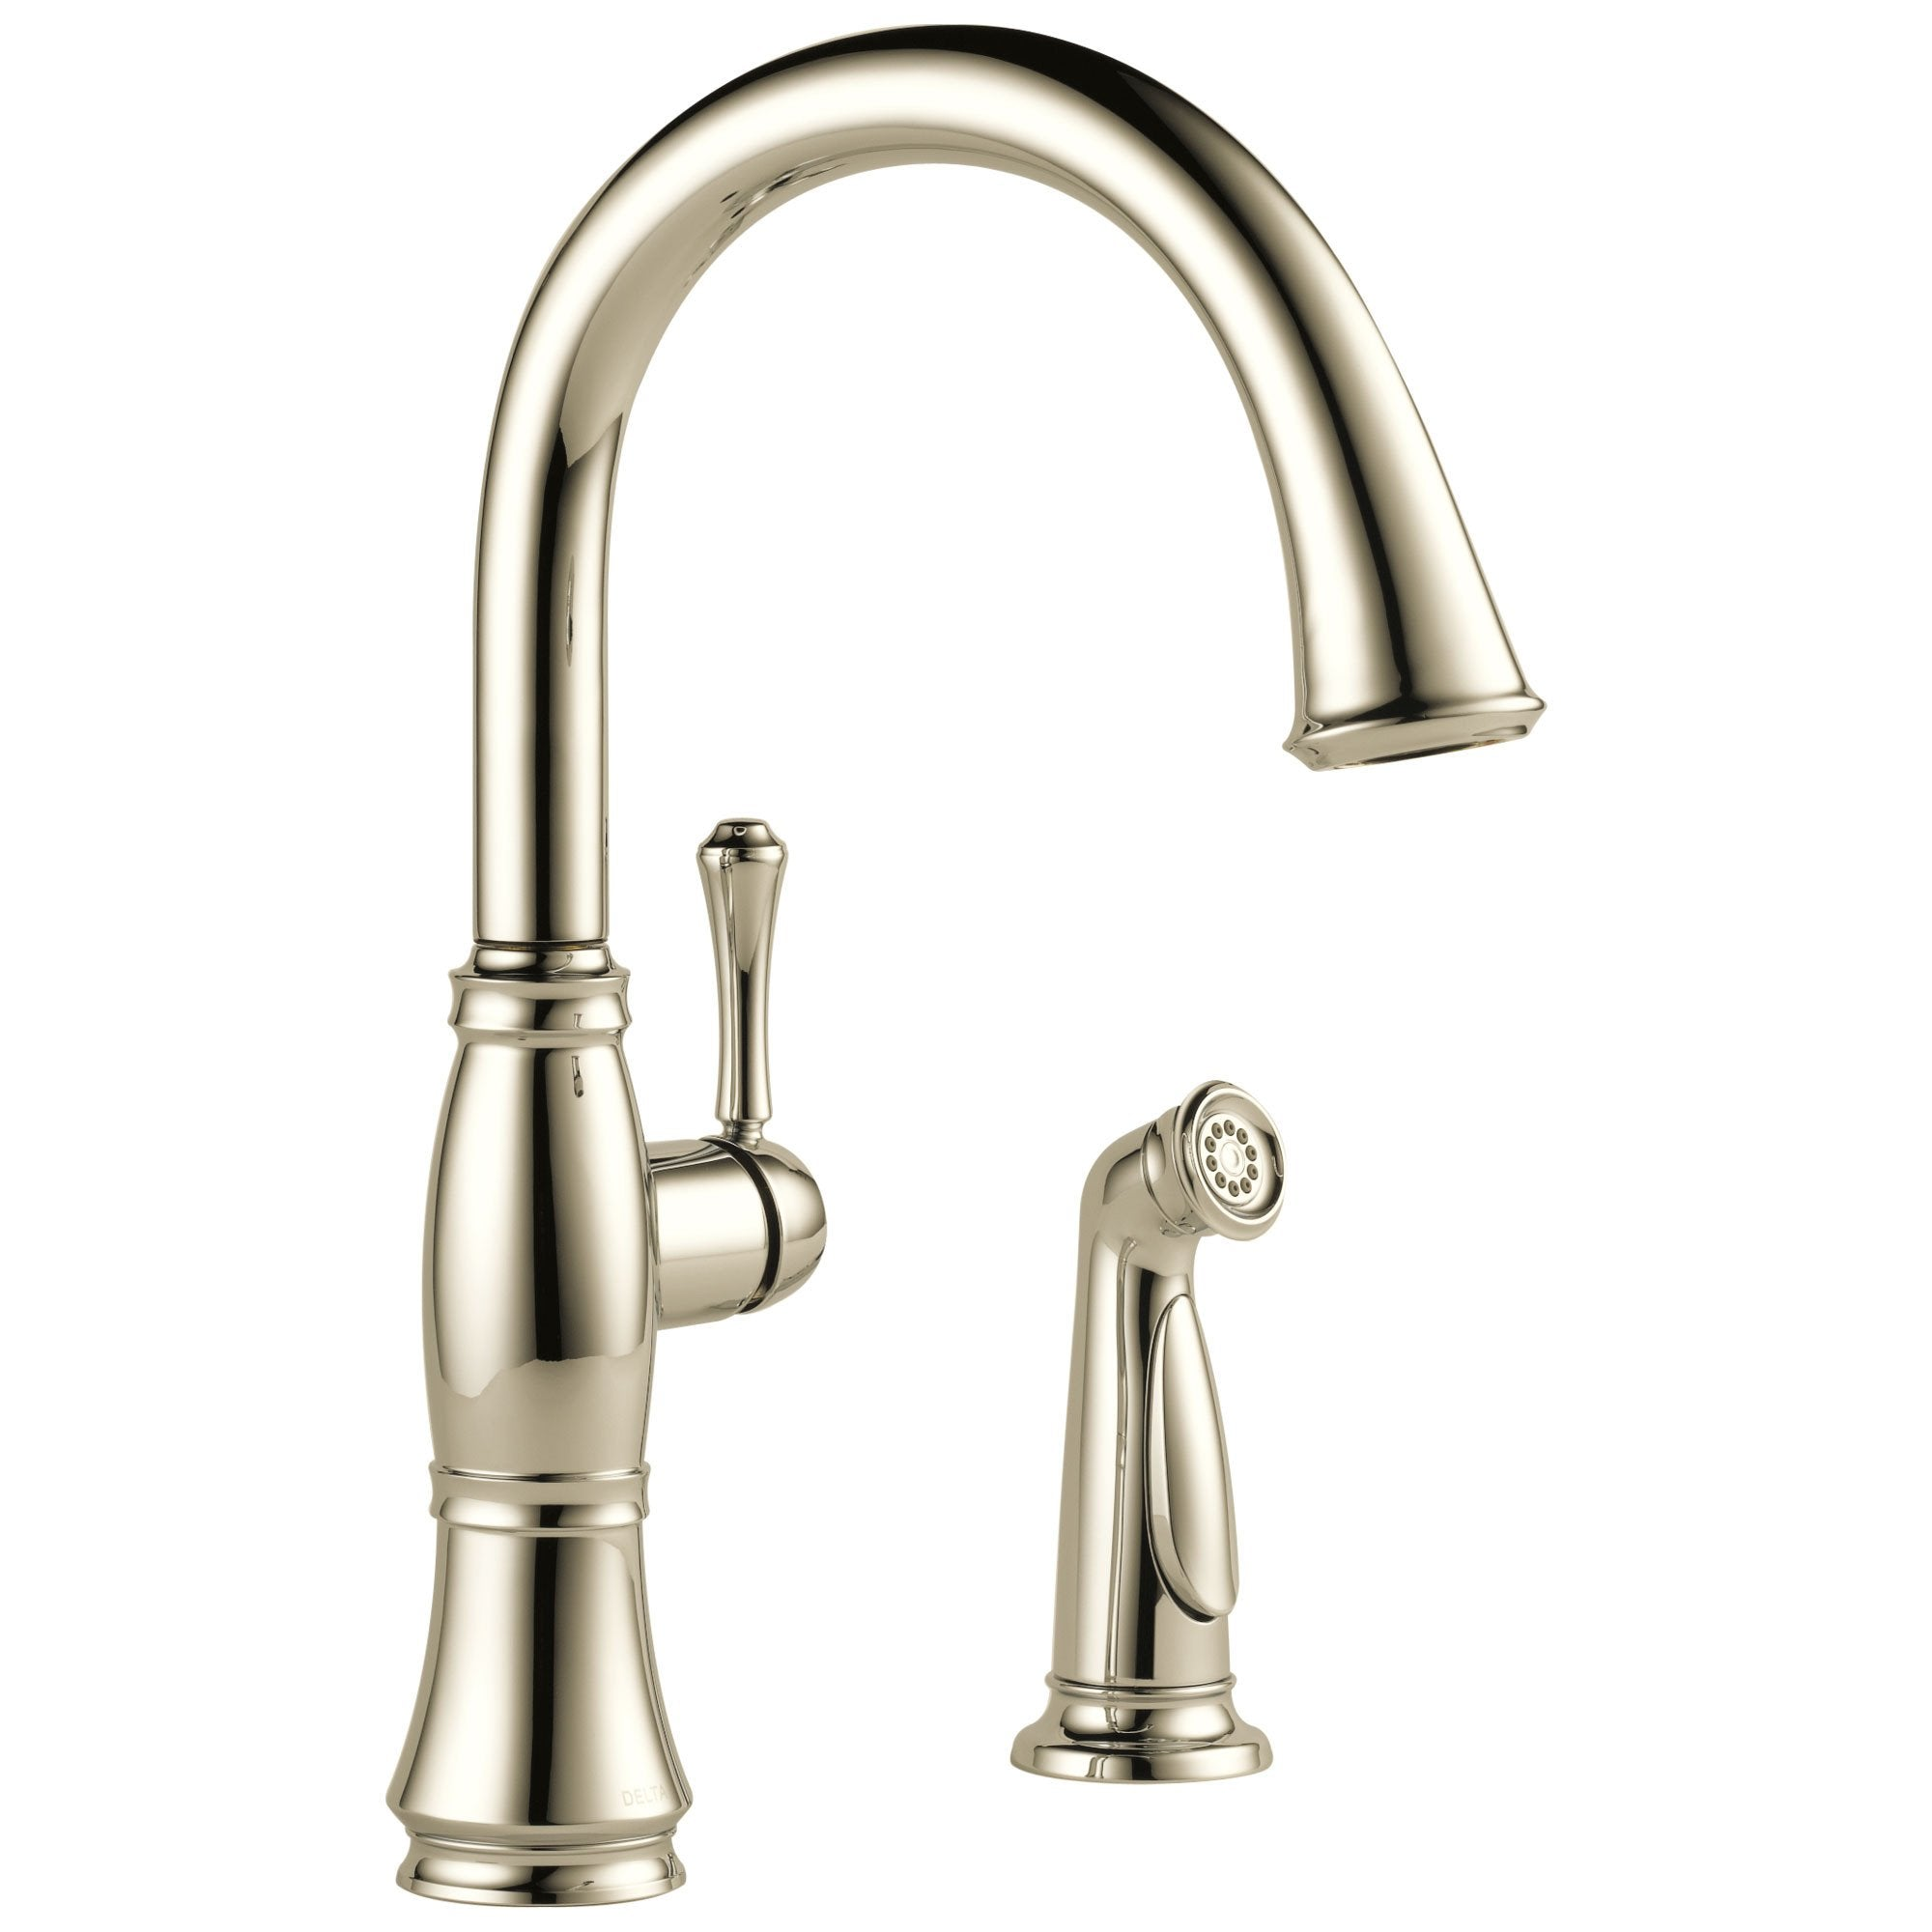 Delta Cassidy Collection Polished Nickel Finish Single Lever Handle Kitchen Sink Faucet with Side Spray 751594